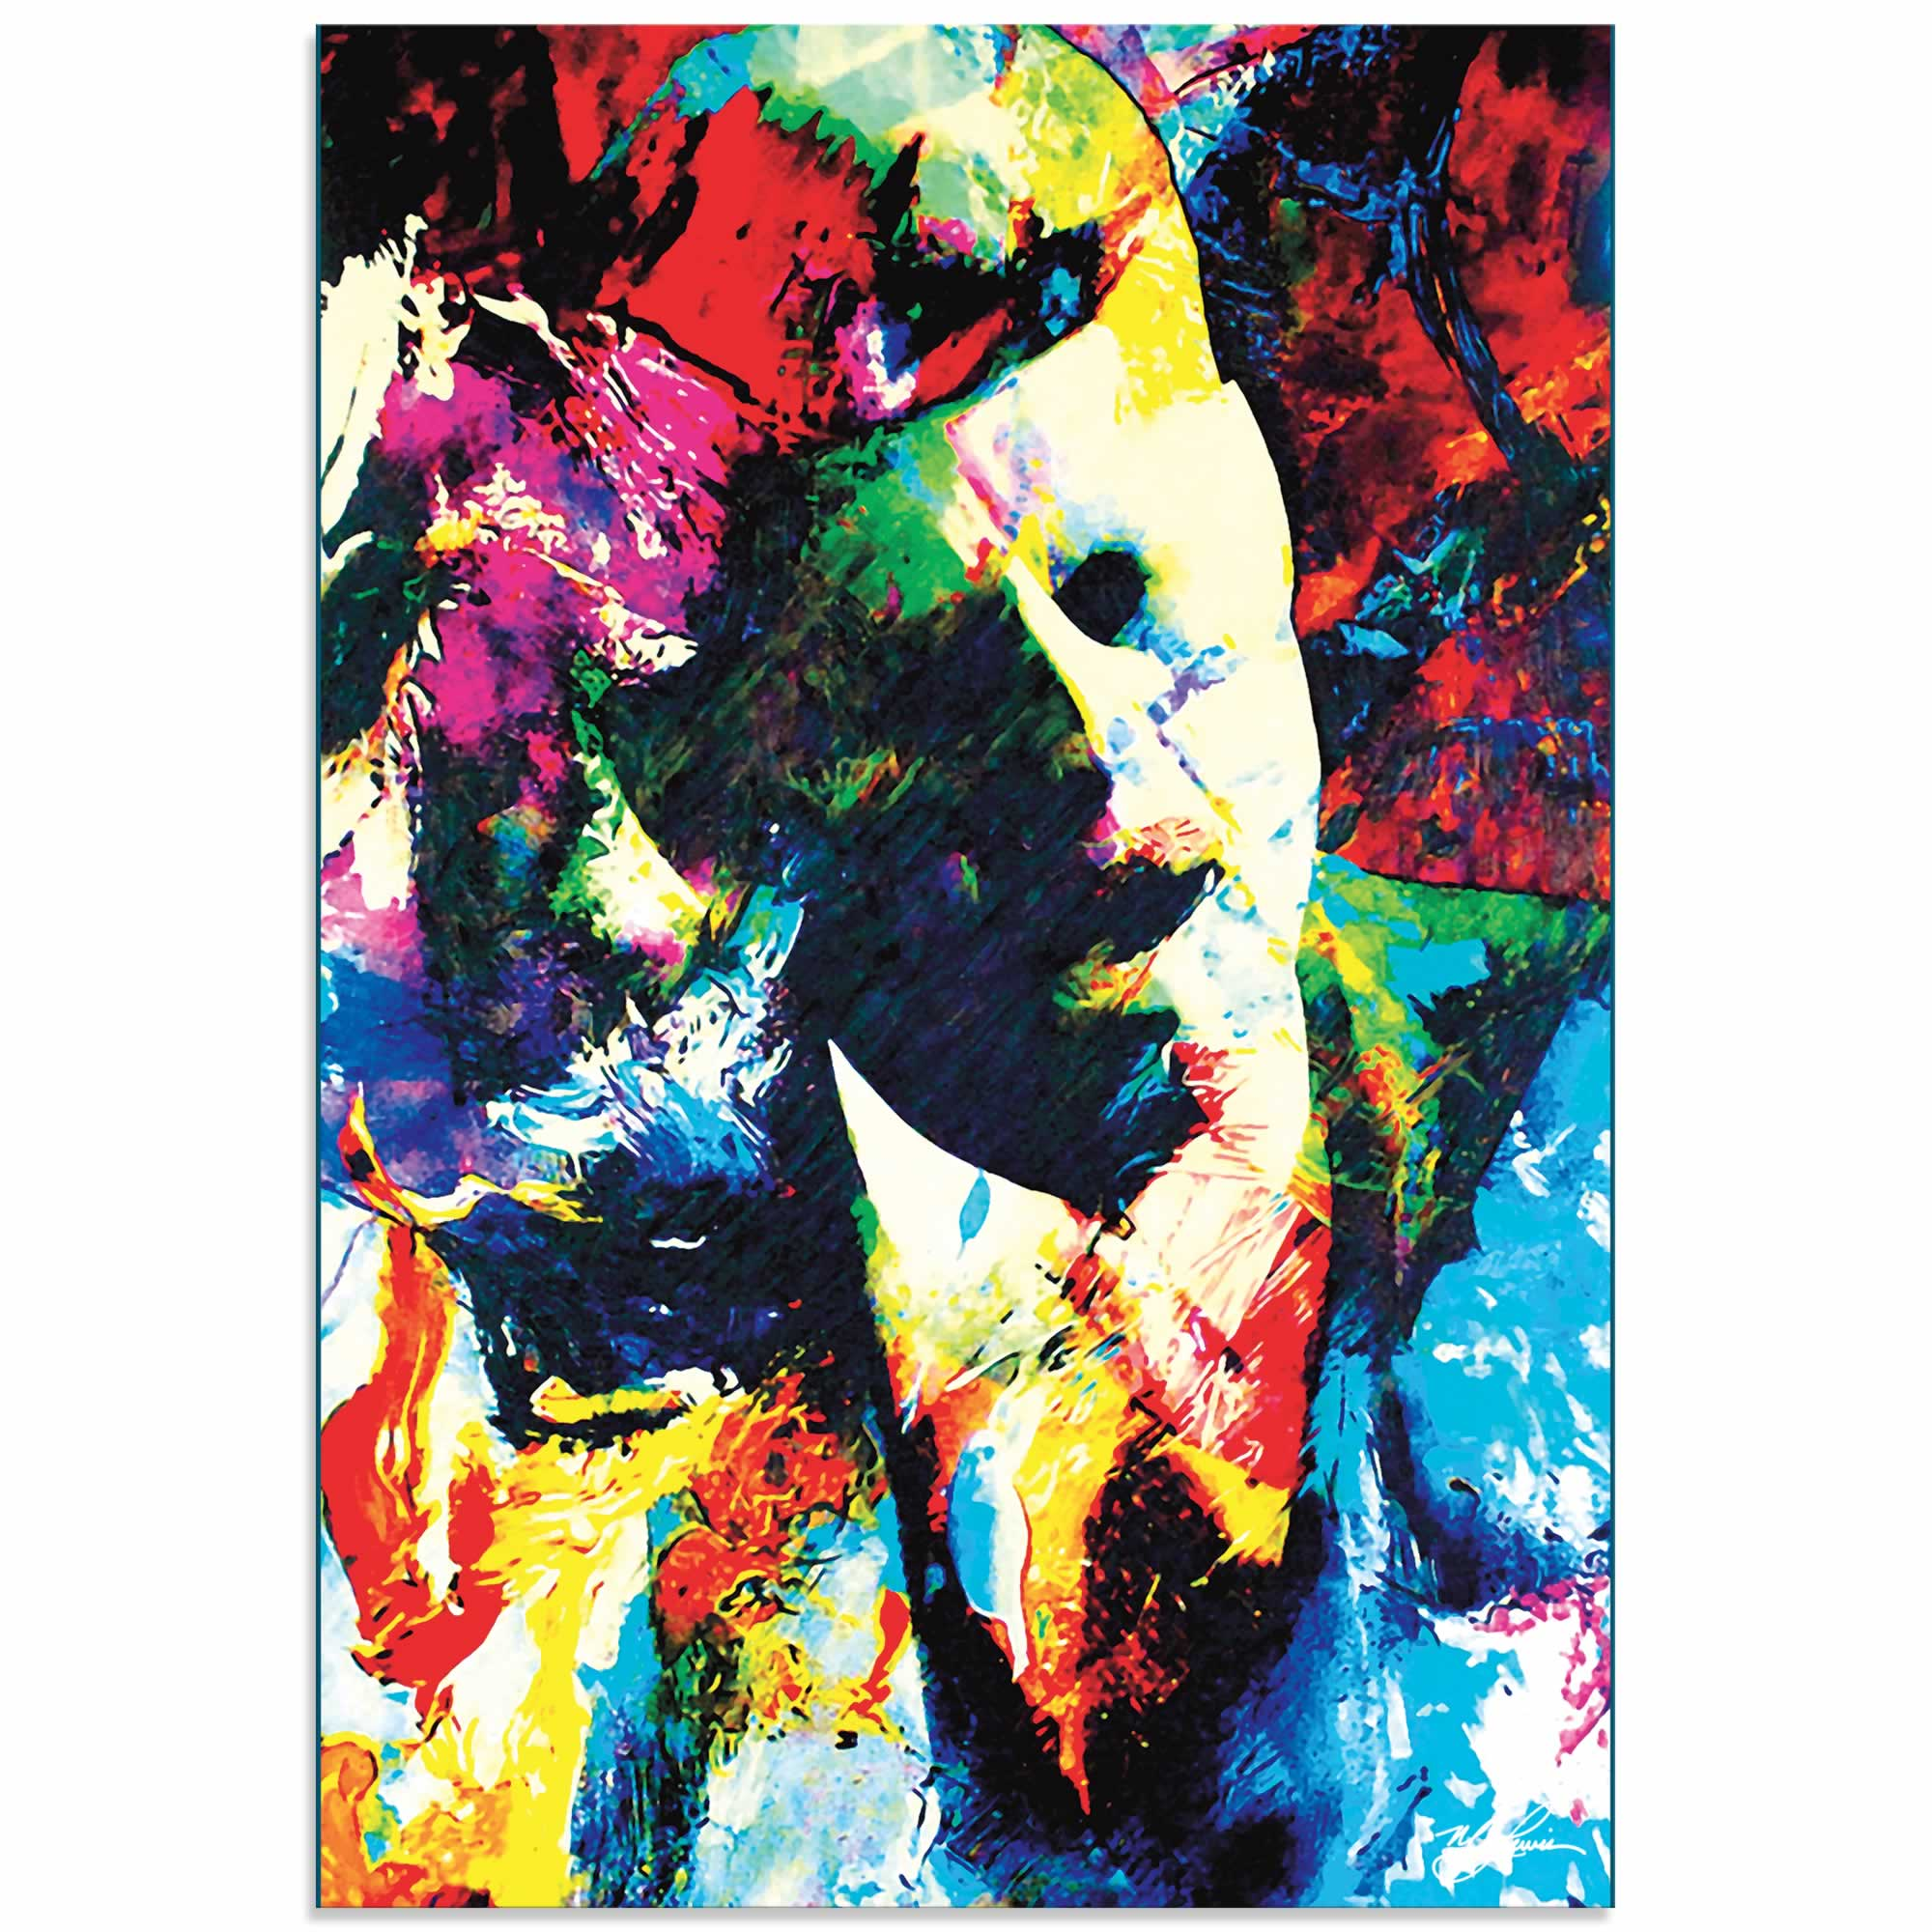 John F Kennedy JFK | Pop Art Painting by Mark Lewis, Signed & Numbered Limited Edition - ML0018